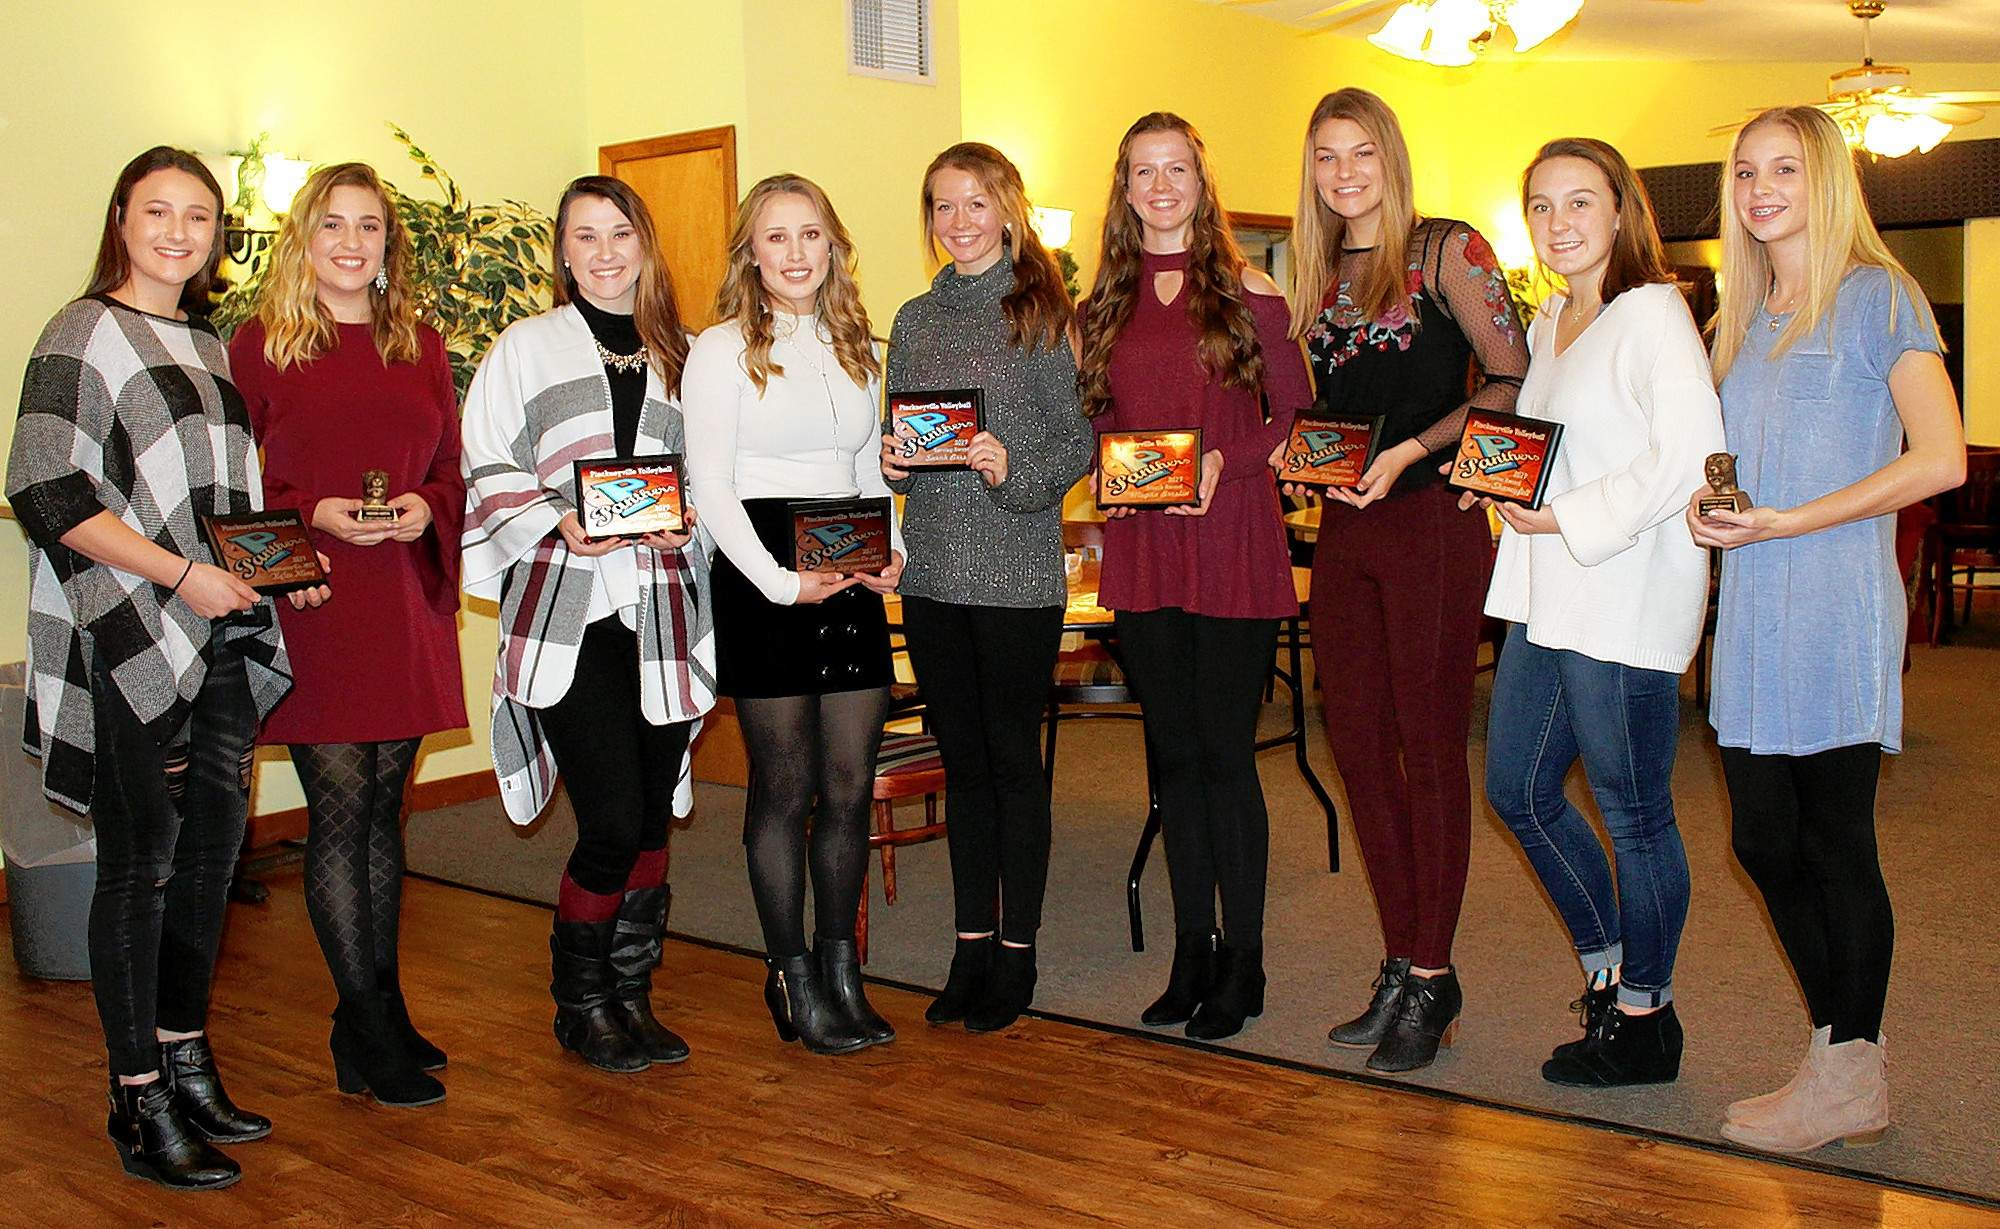 Team award winners and stat leaders recognized, from left, are: Kylee Kling, defensive MVP; Megan Mayo, winner of the Coaches' Award; Emma Banach, offensive MVP; Olivia Szczepanski, defensive MVP; Sarah Breslin, highest ace percentage while serving; Megan Breslin, highest kill percentage, attacking; Hallie Waggoner, Most Improved Player; Elaine Shaneyfelt, most assists, setting; and Alexis Hirsch, winners of the Coaches' Award.    LEFT: SIRR Mississippi Division All-Conference members are (L to R) Kylee Kling, Emma Banach, Olivia Szczepanski, Elaine Shaneyfelt.  Also, Kling, Banach and Szczepanski were also named All-South.